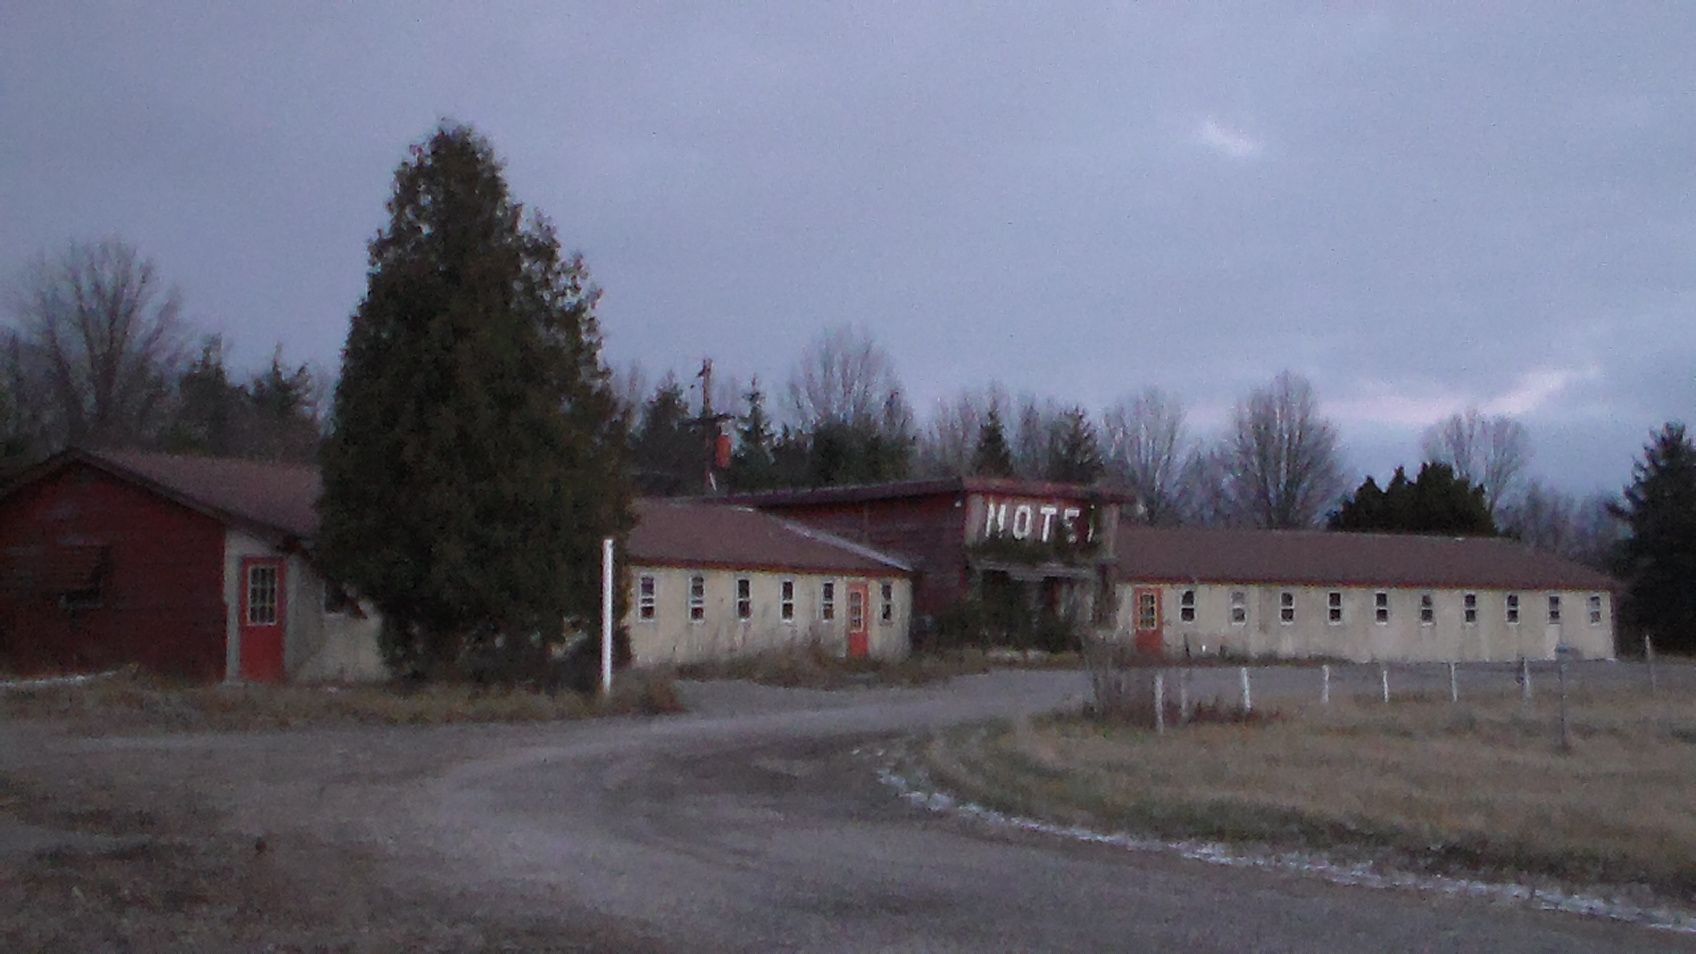 Abandoned Motel Benson Ohio